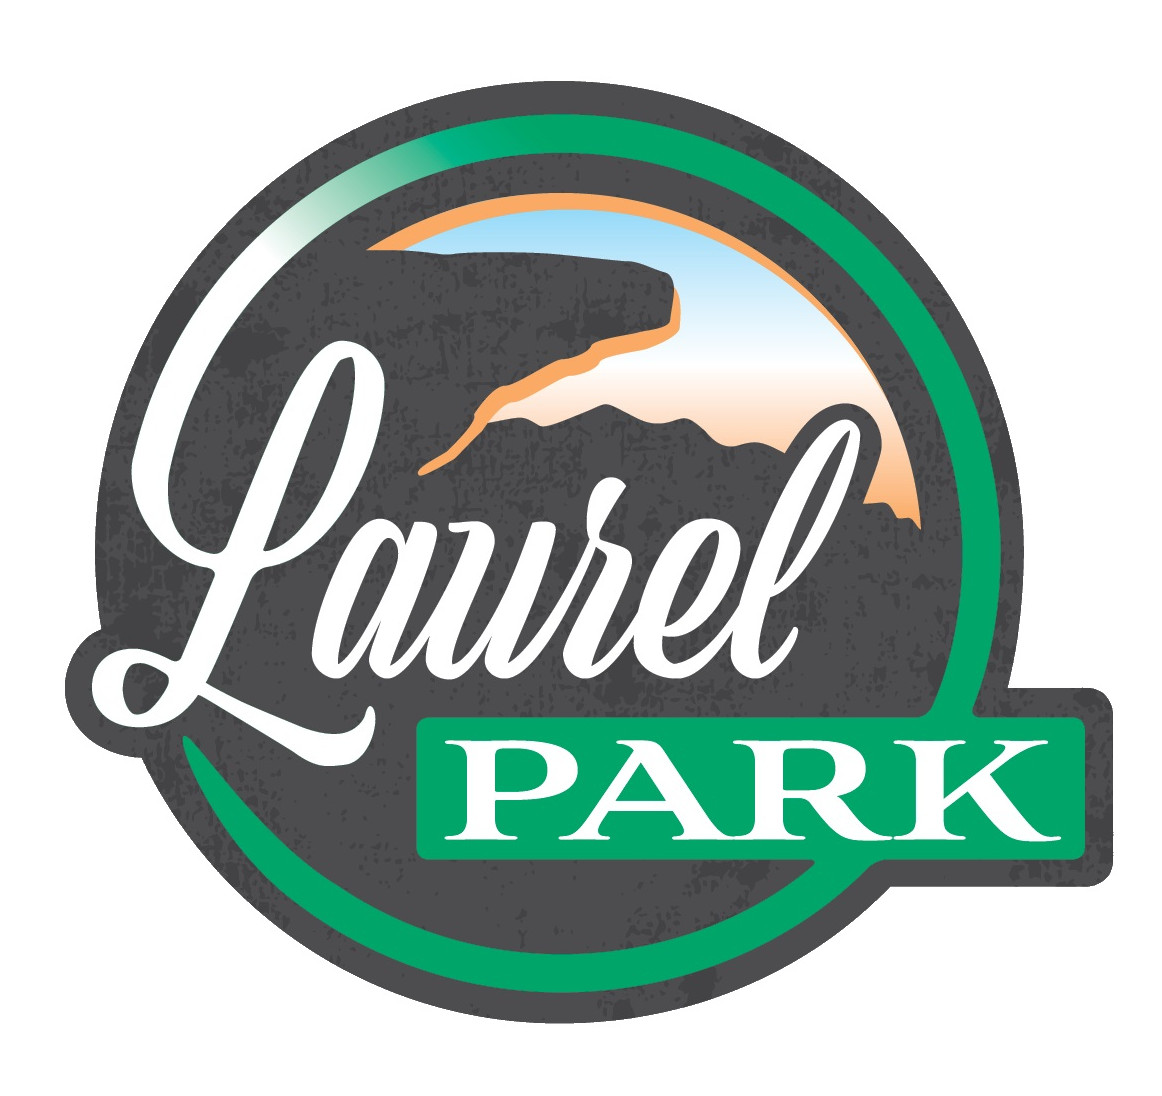 Town of Laurel Park